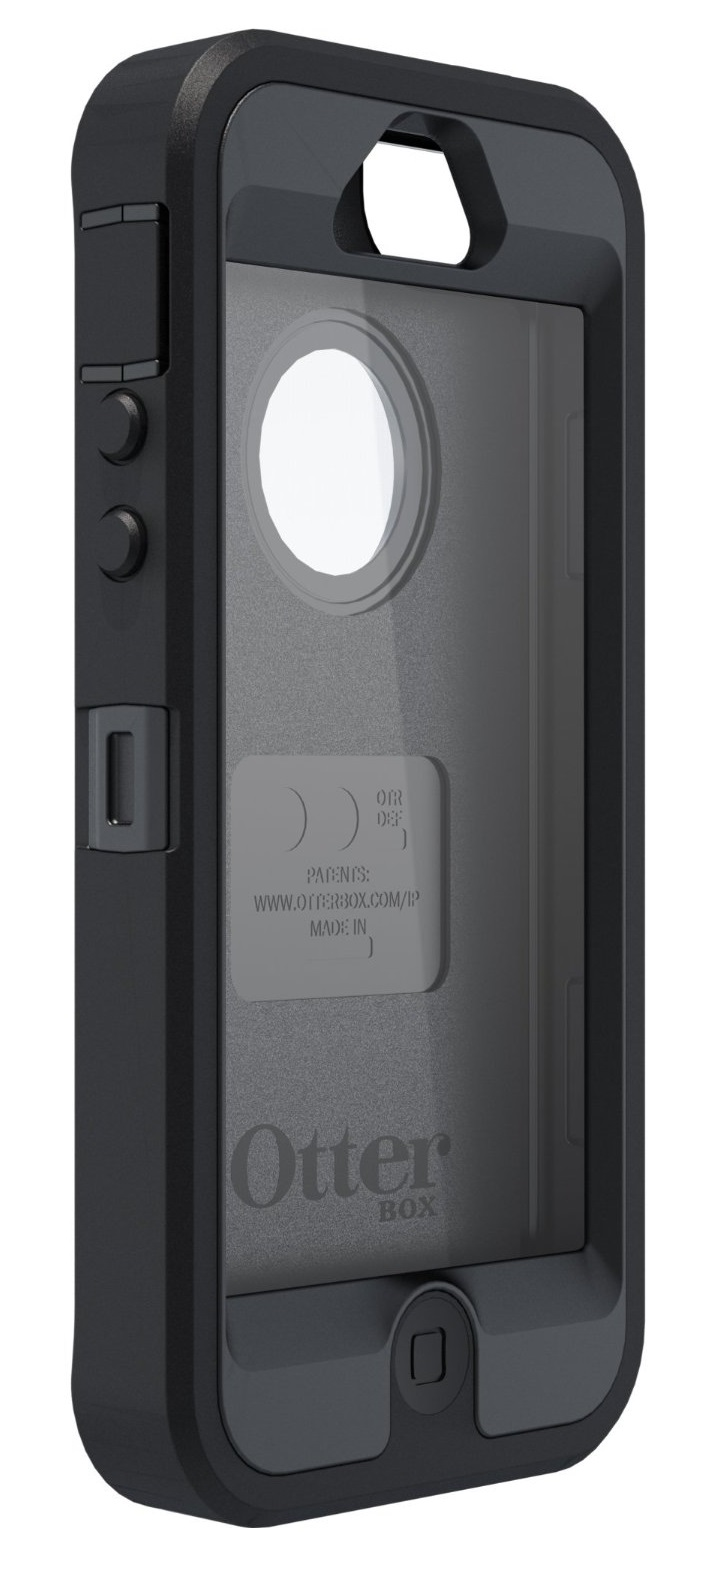 ... OtterBox Defender Case + Belt Holster for Apple iPhone 5, 5s and SE